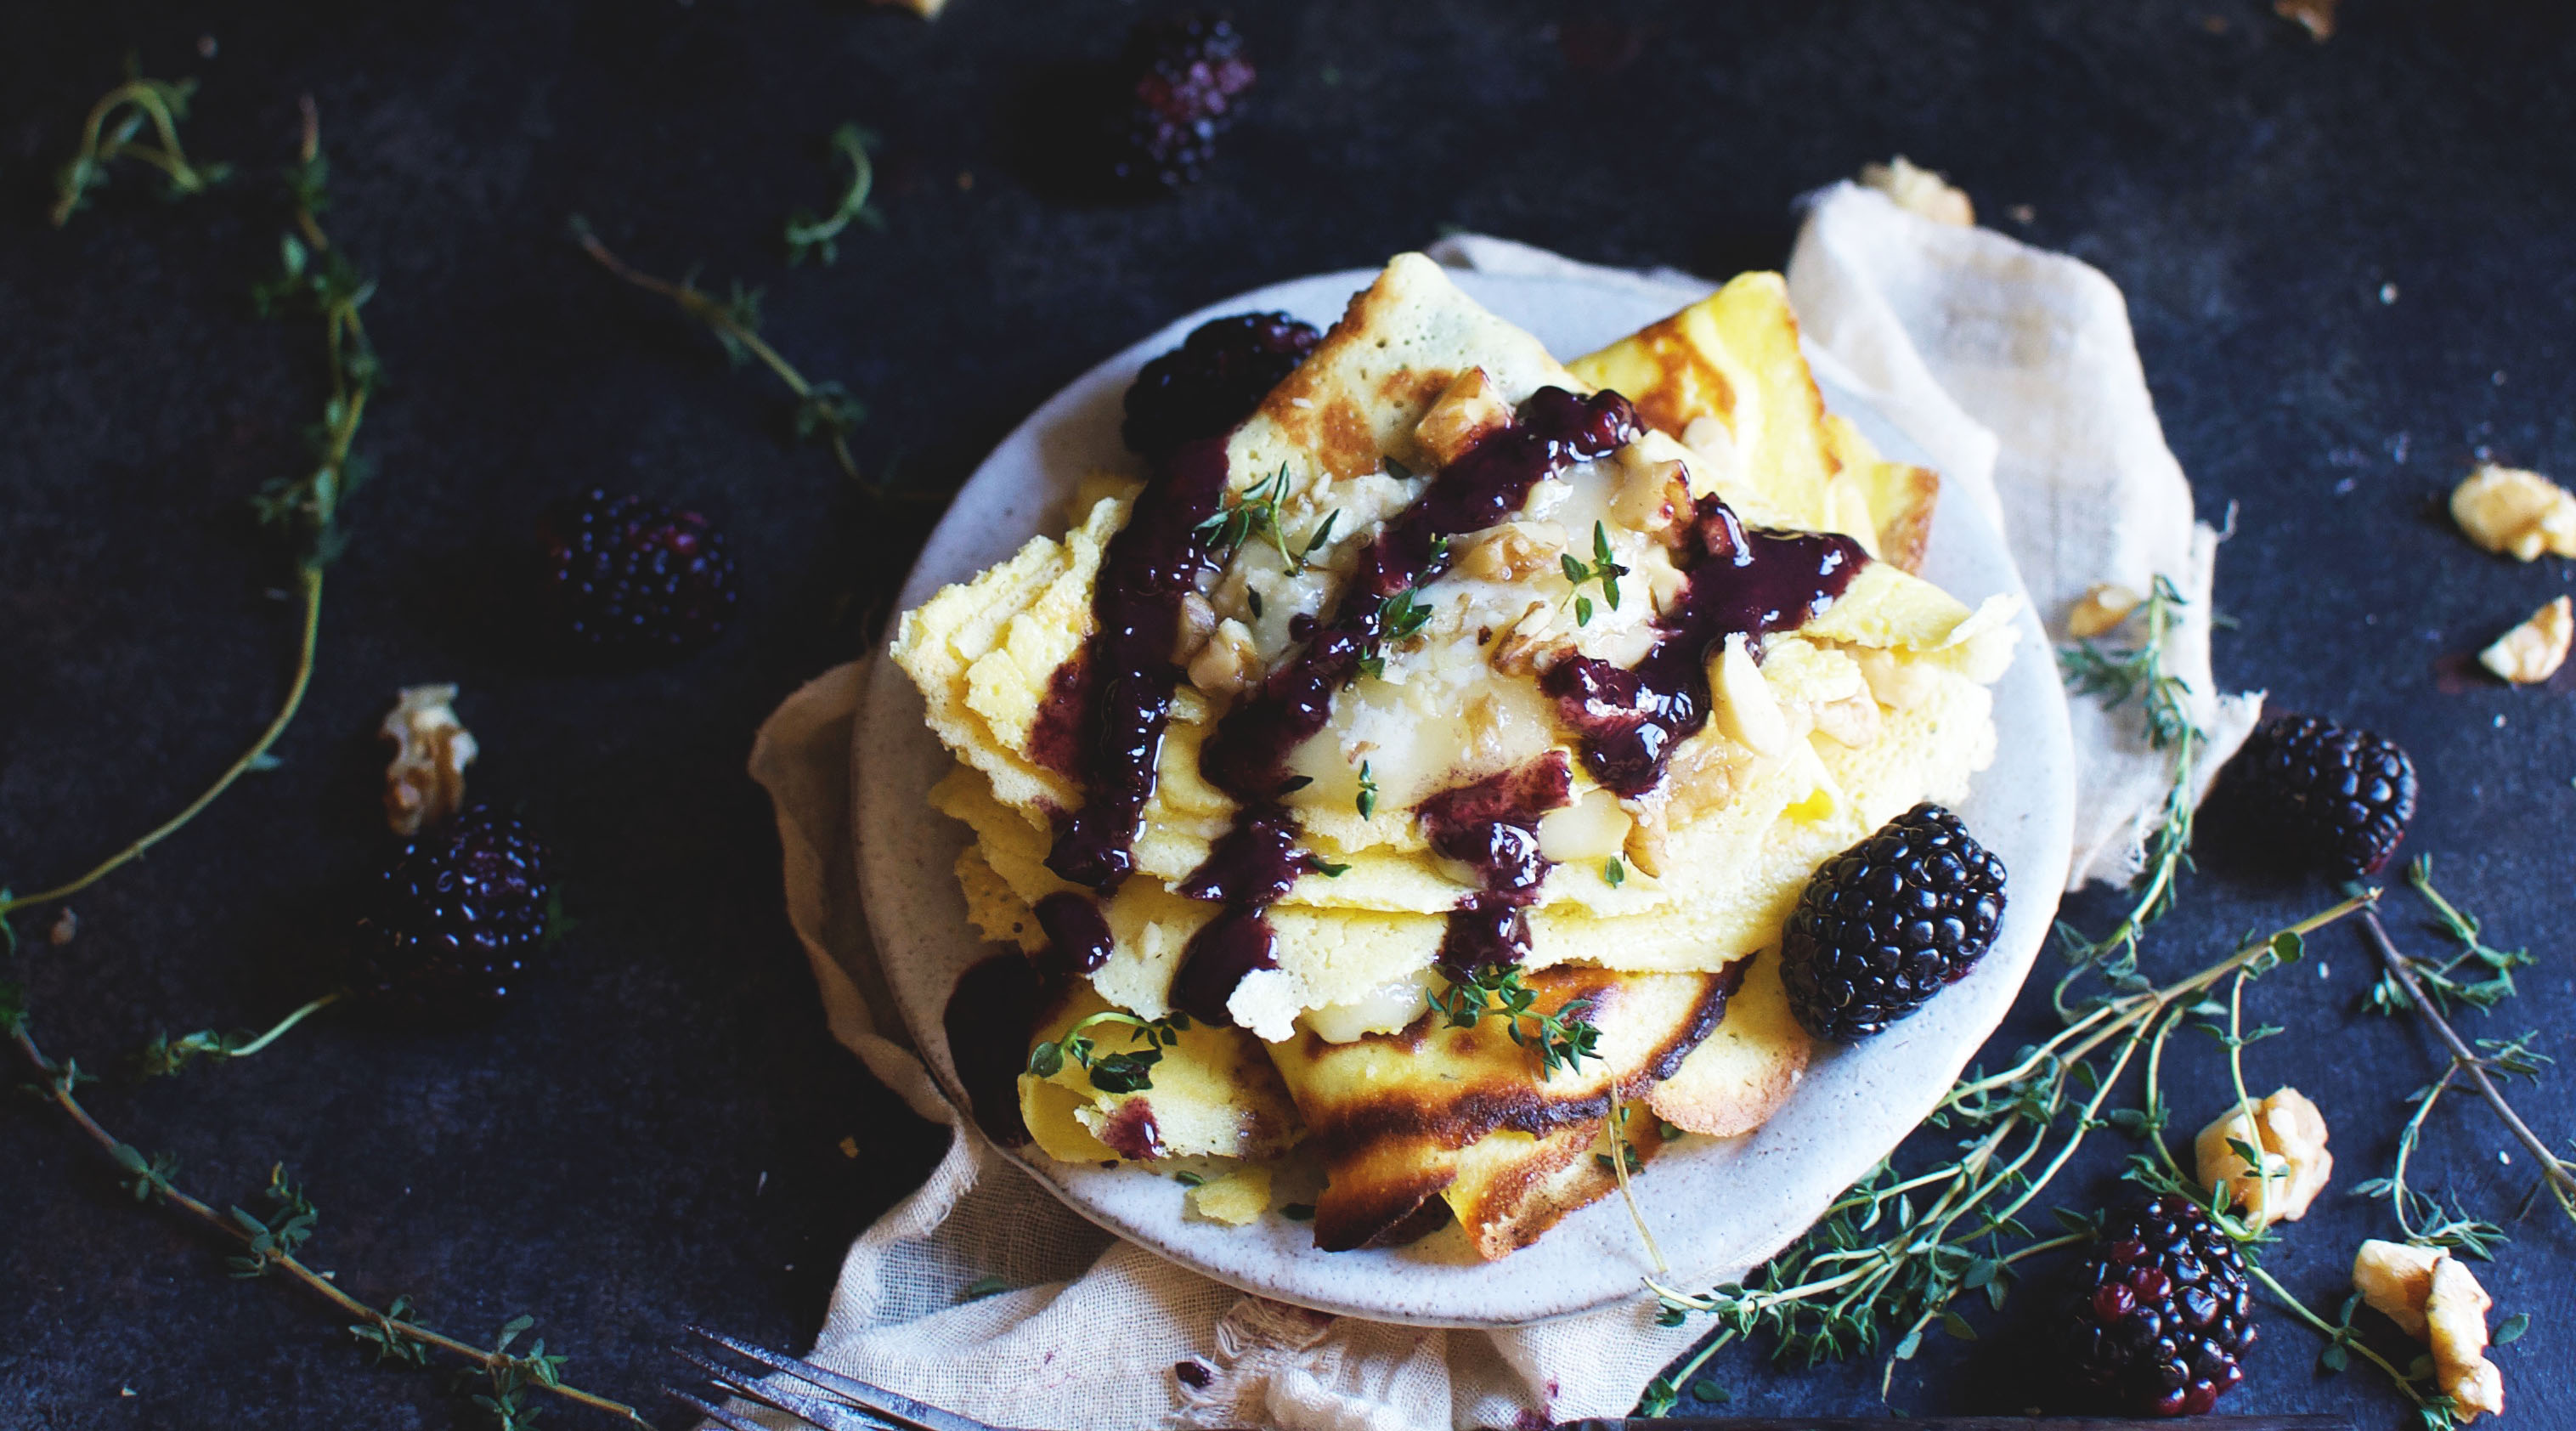 Low-Carb Crepes with Brie and Savory Blackberry Sauce